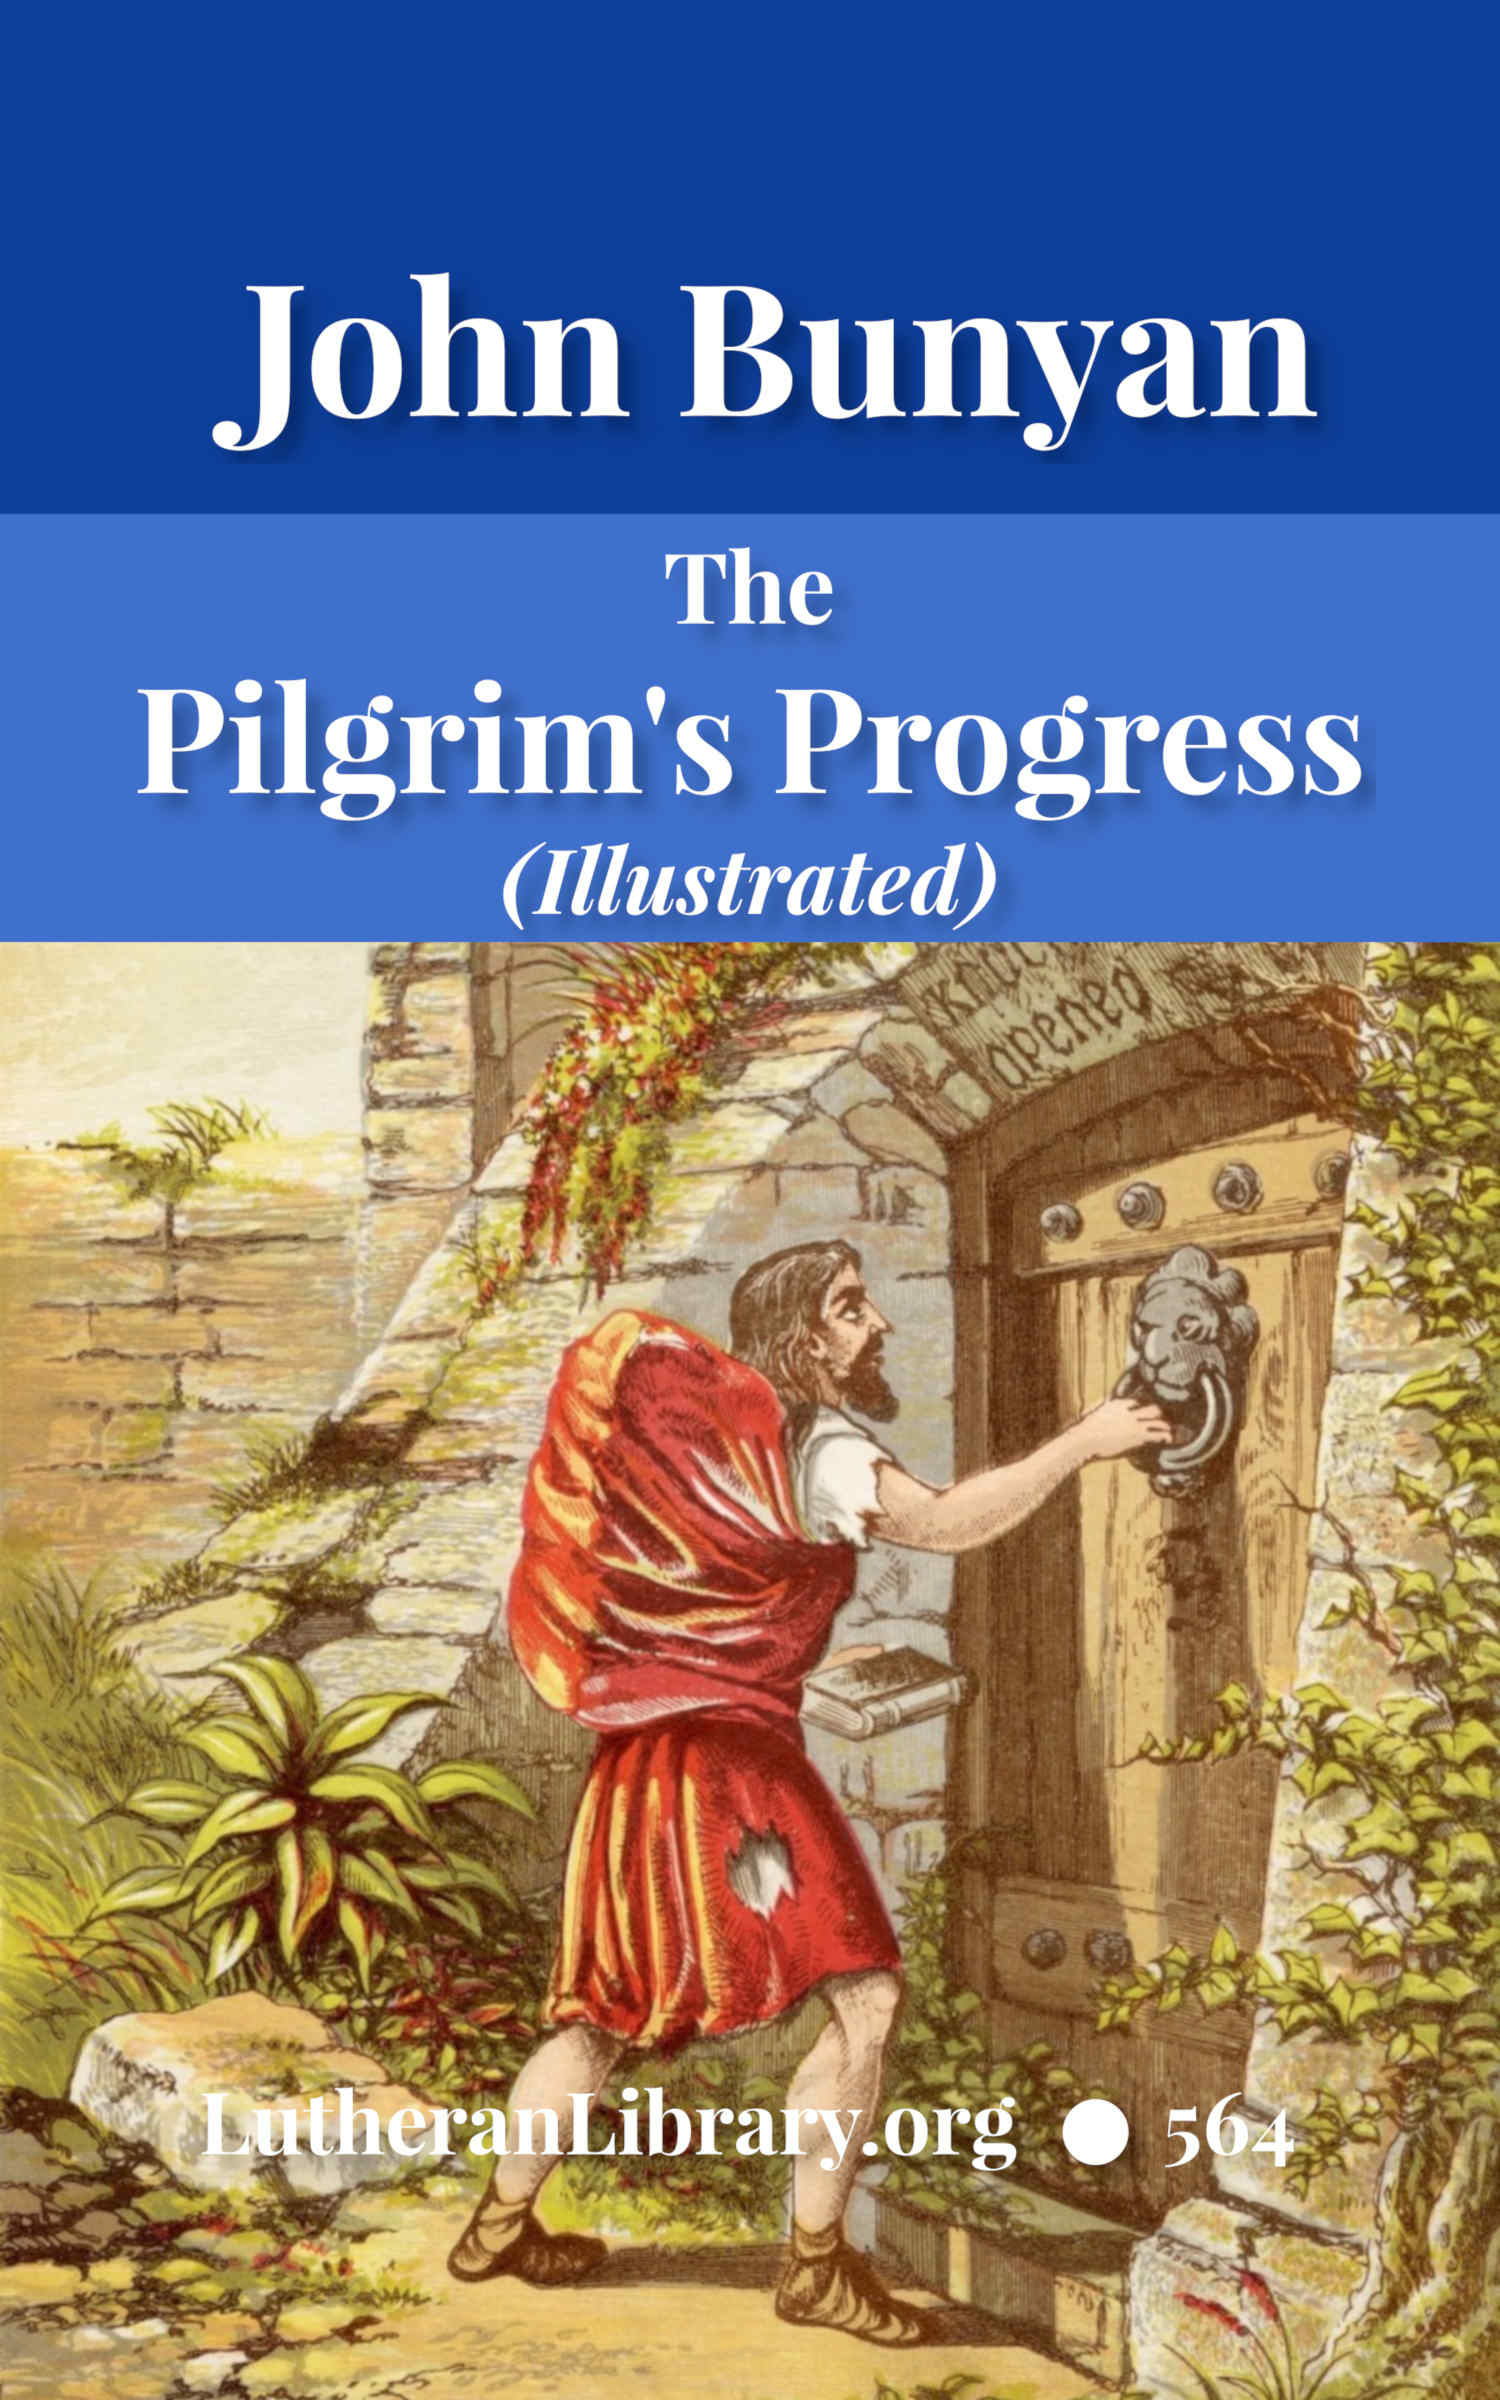 The Pilgrim's Progress (Illustrated) by John Bunyan